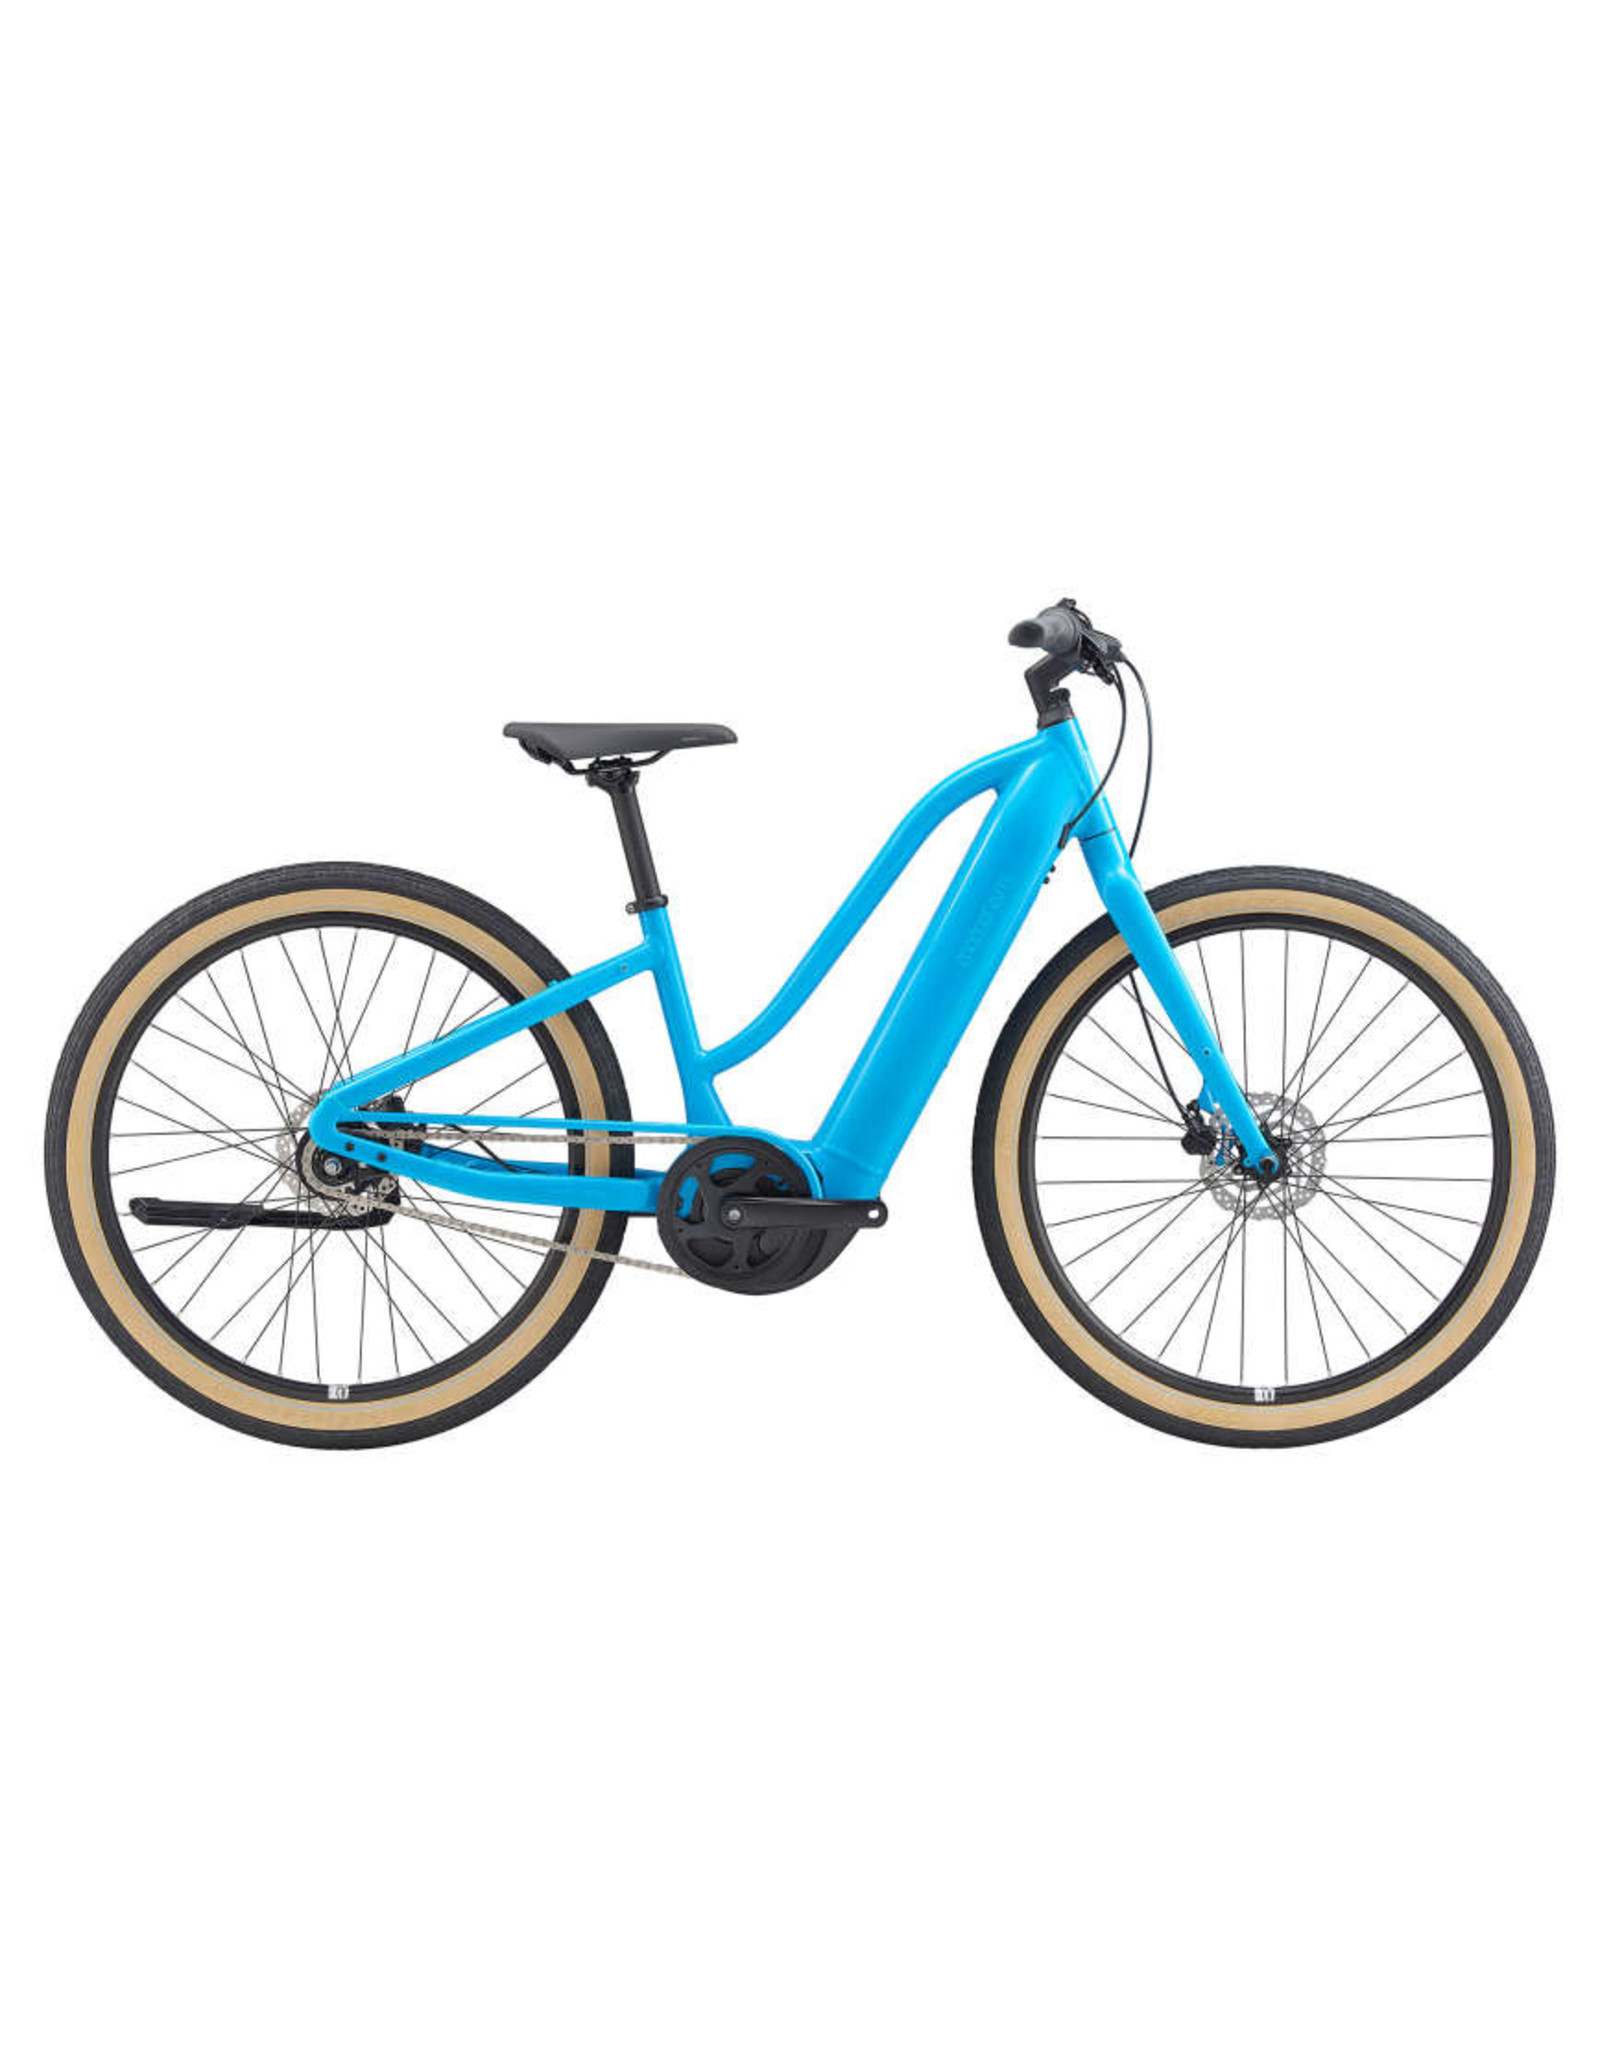 Giant 2021 Giant Momentum Transend E+ LDS 28MPH